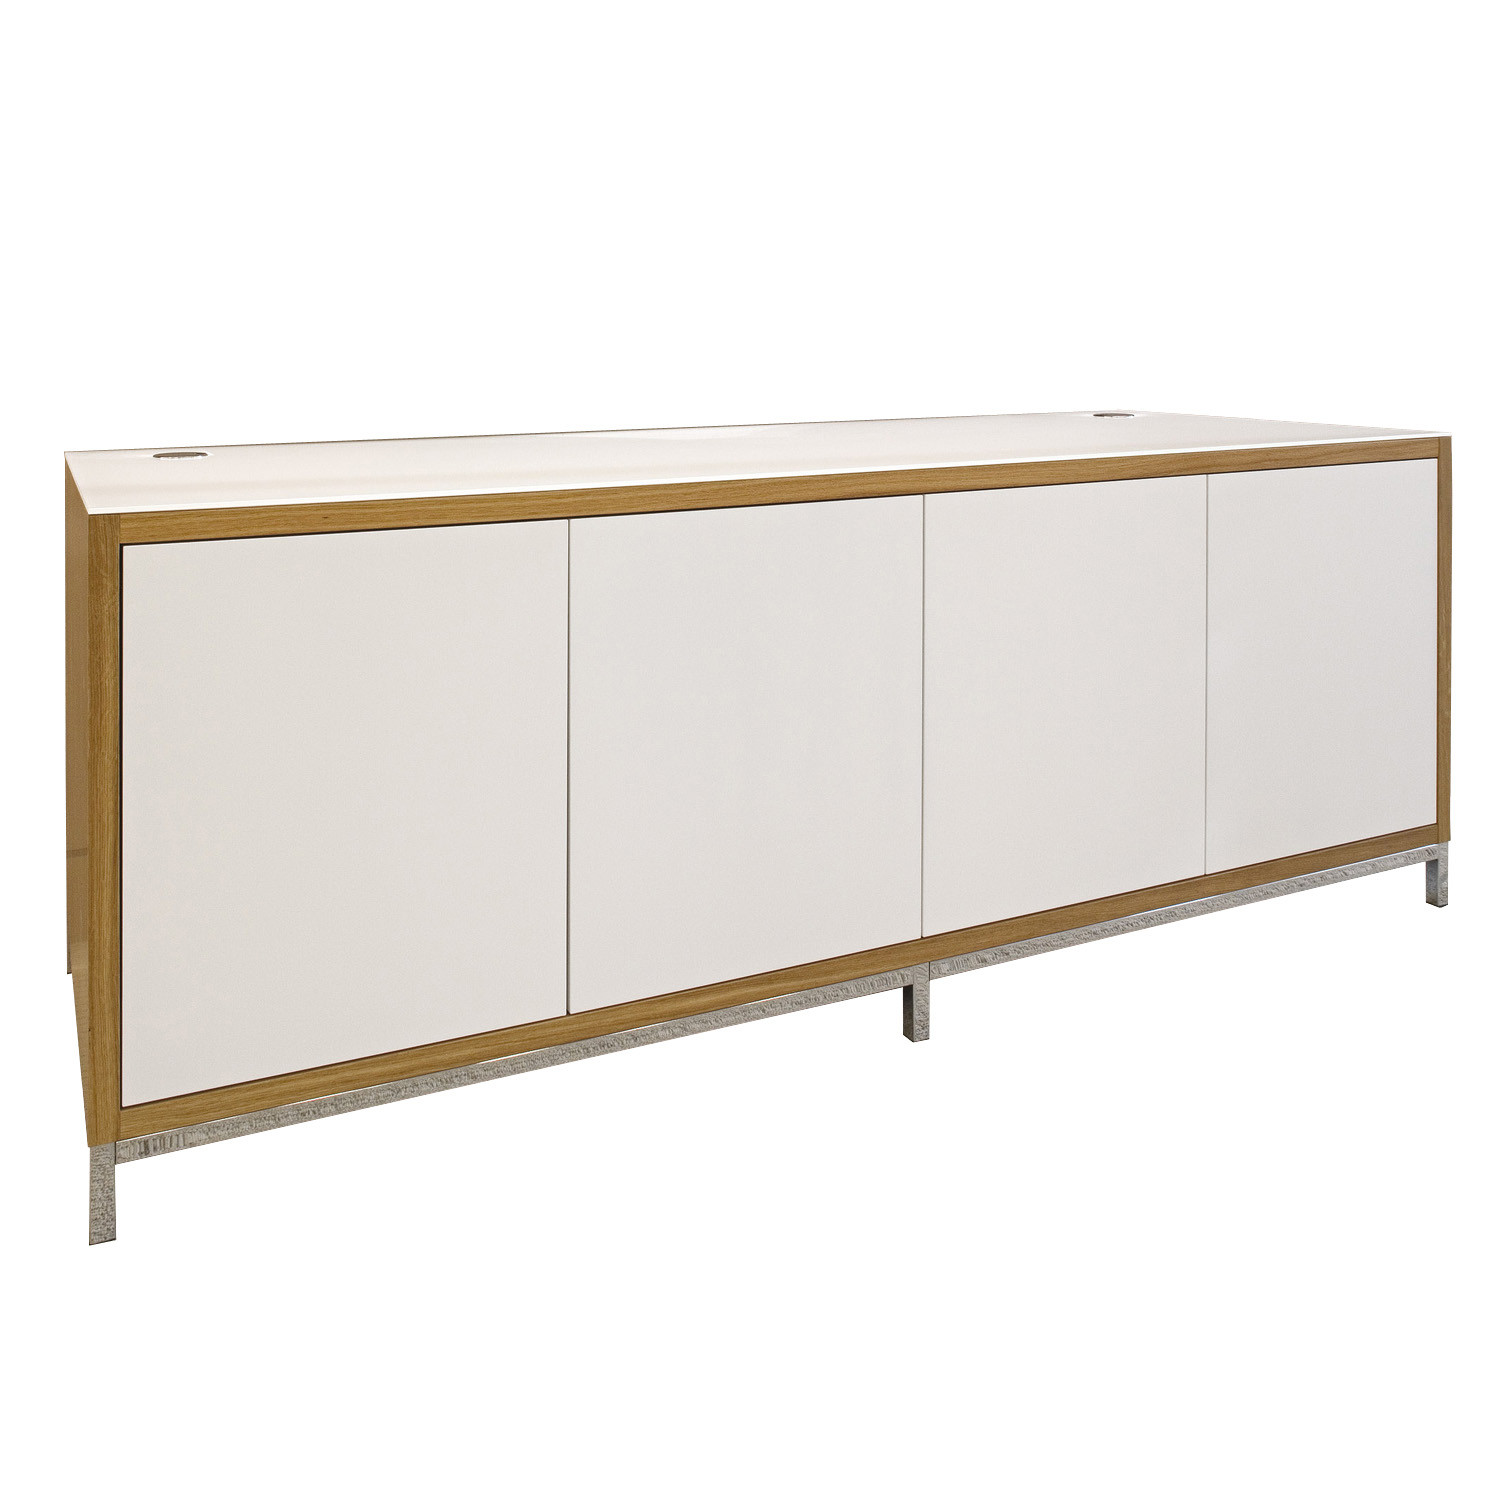 Custom made credenzas bespoke design apr s furniture for Custom made furniture